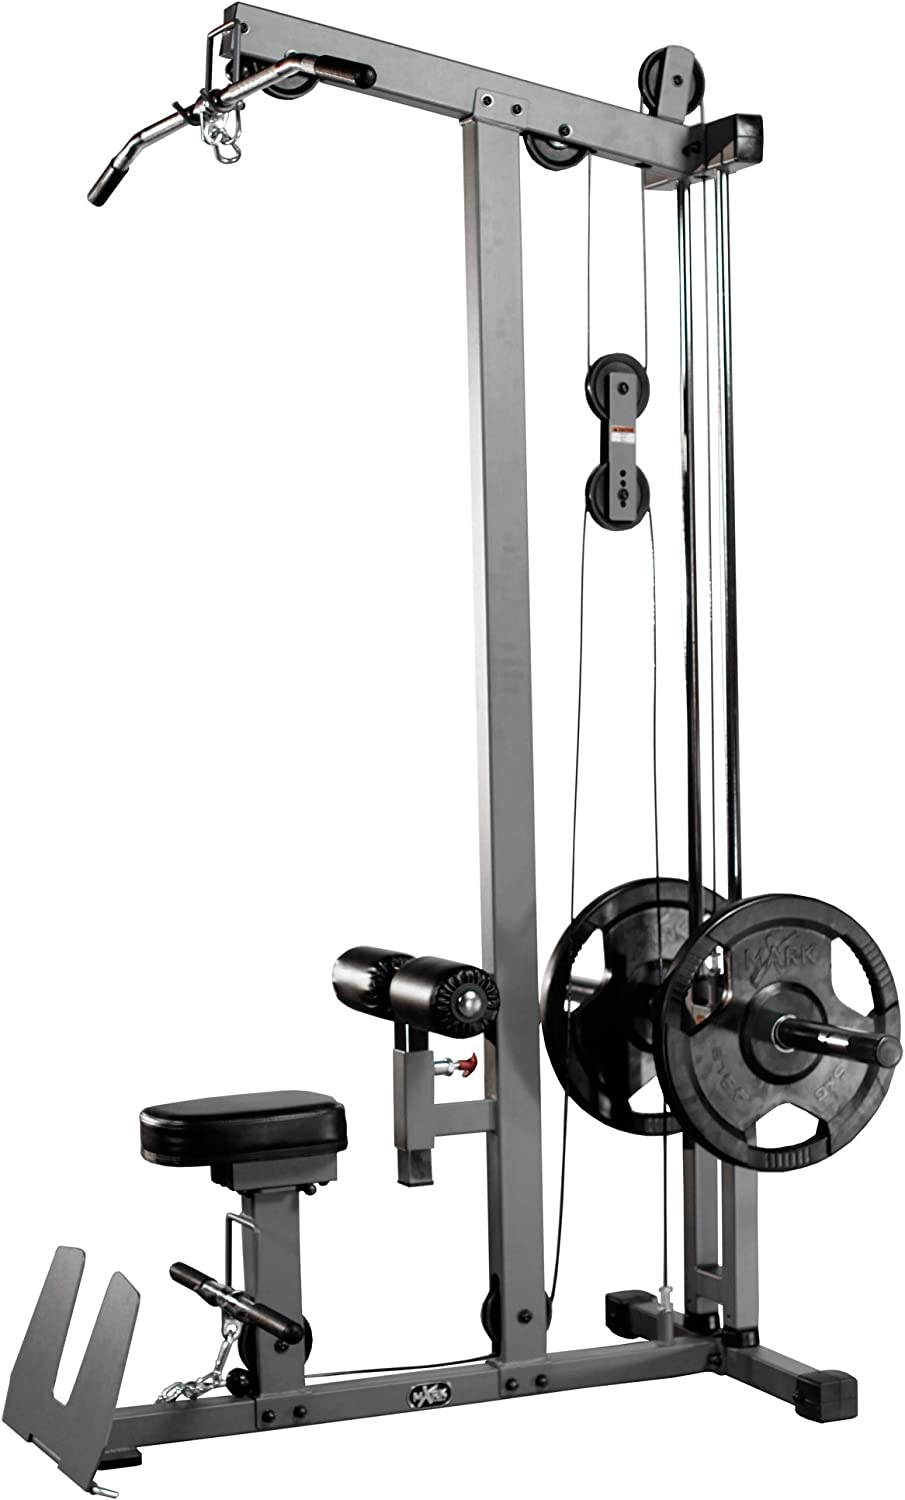 Amazon.com : XMark Heavy Duty LAT Pulldown and Low Row Cable Machine with High and Low Pulley Stations and Flip-Up Footplate (Plates Not Included) : Arm Exercise Machines : Sports & Outdoors